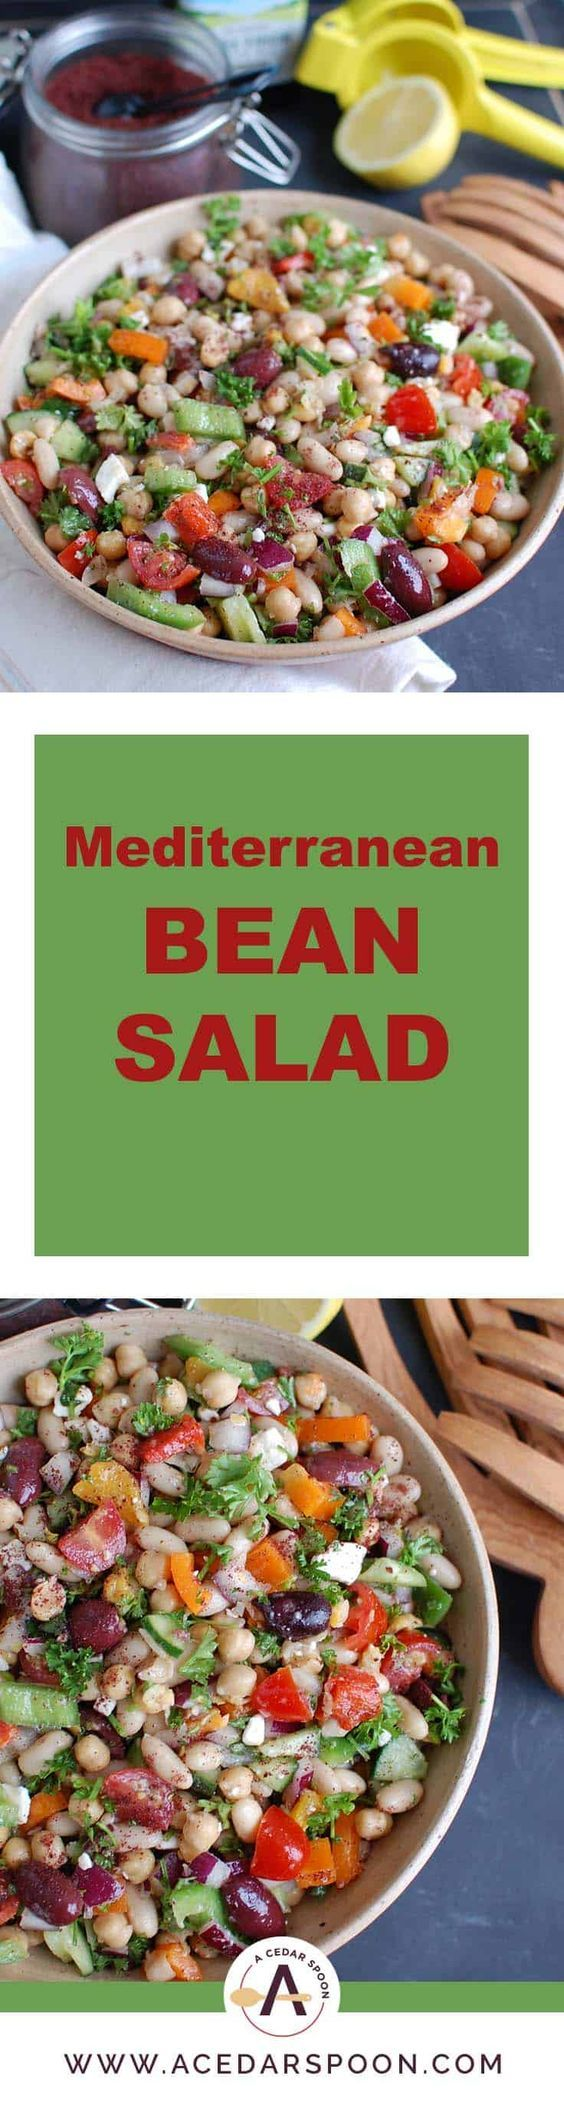 Mediterranean Bean Salad packs chickpeas, white beans, your favorite Mediterranean vegetables and feta cheese into one healthy salad and is topped with a light lemony dressing. This works perfectly as a side dish to a meal or even as lunch with pita bread and hummus.